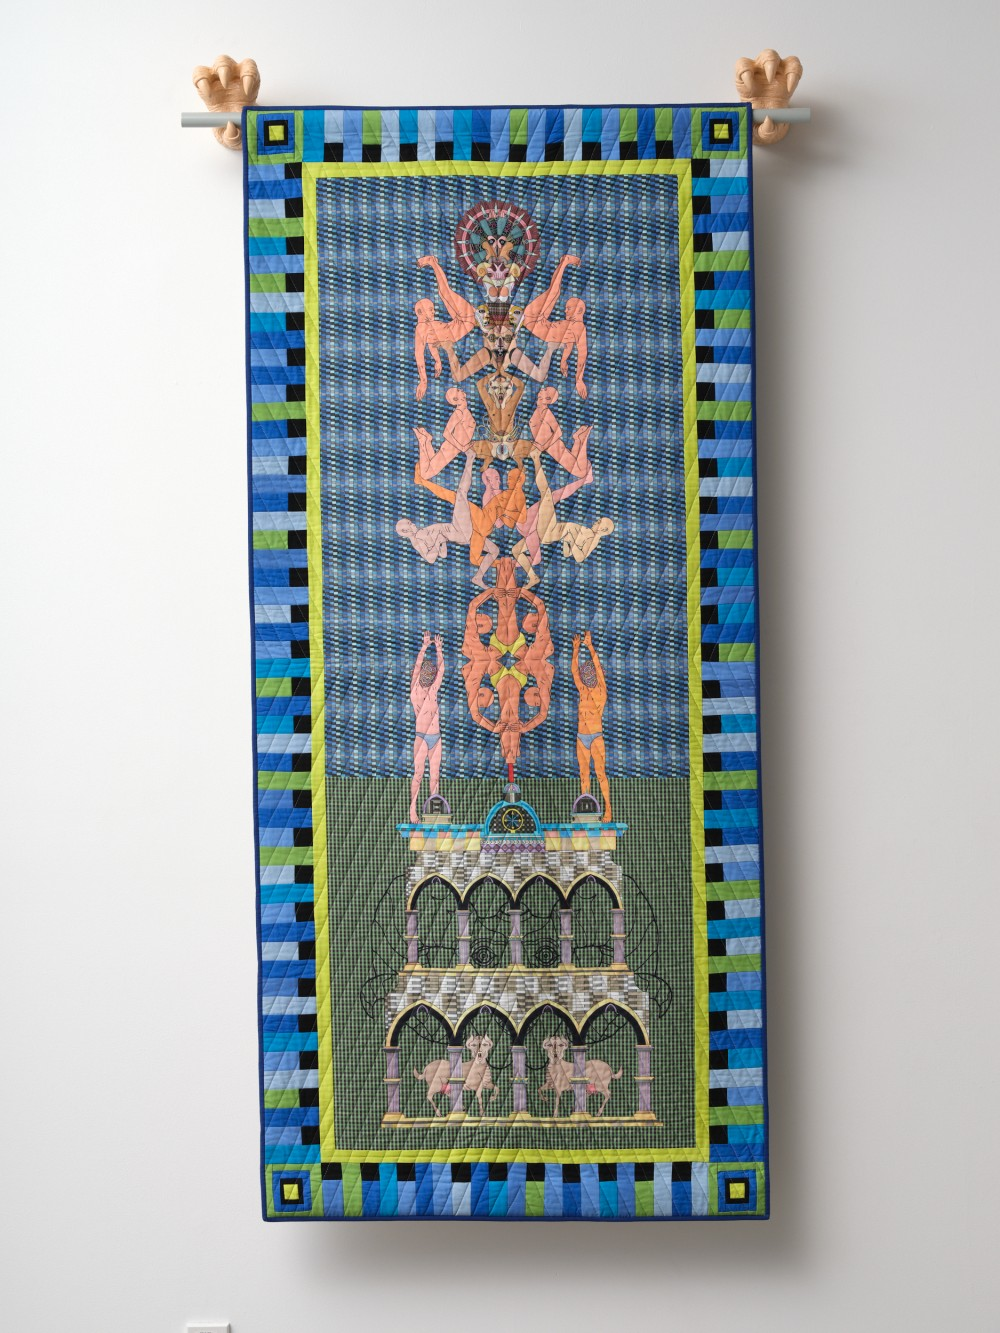 Jess Johnson in collaboration with Cynthia Johnson *Flesh Totem Double Arches* 2018 digital print on cotton with pieced fabric border, painted cast resin, wooden dowel 1950 x 890 mm Courtesy of the artist and Ivan Anthony Gallery, Tāmaki Makaurau Auckland  / *When*, 18 – 28 August, 2021, Artspace Aotearoa. Image: Sam Hartnett, 2021.